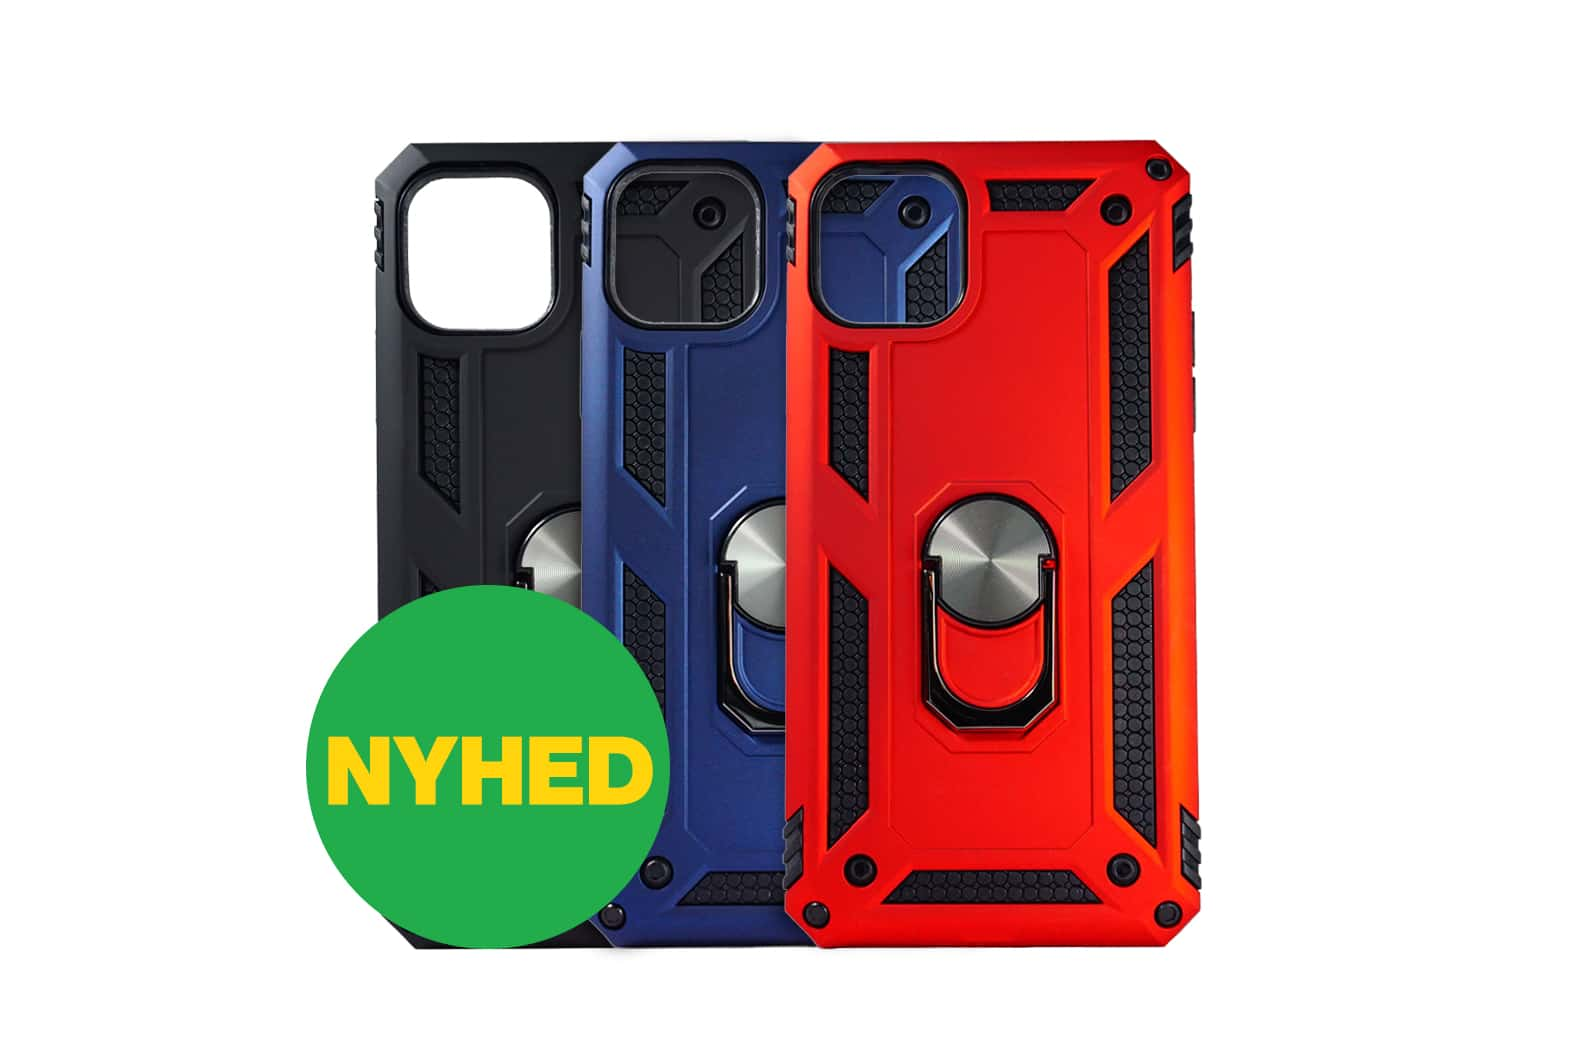 353793_nyhed